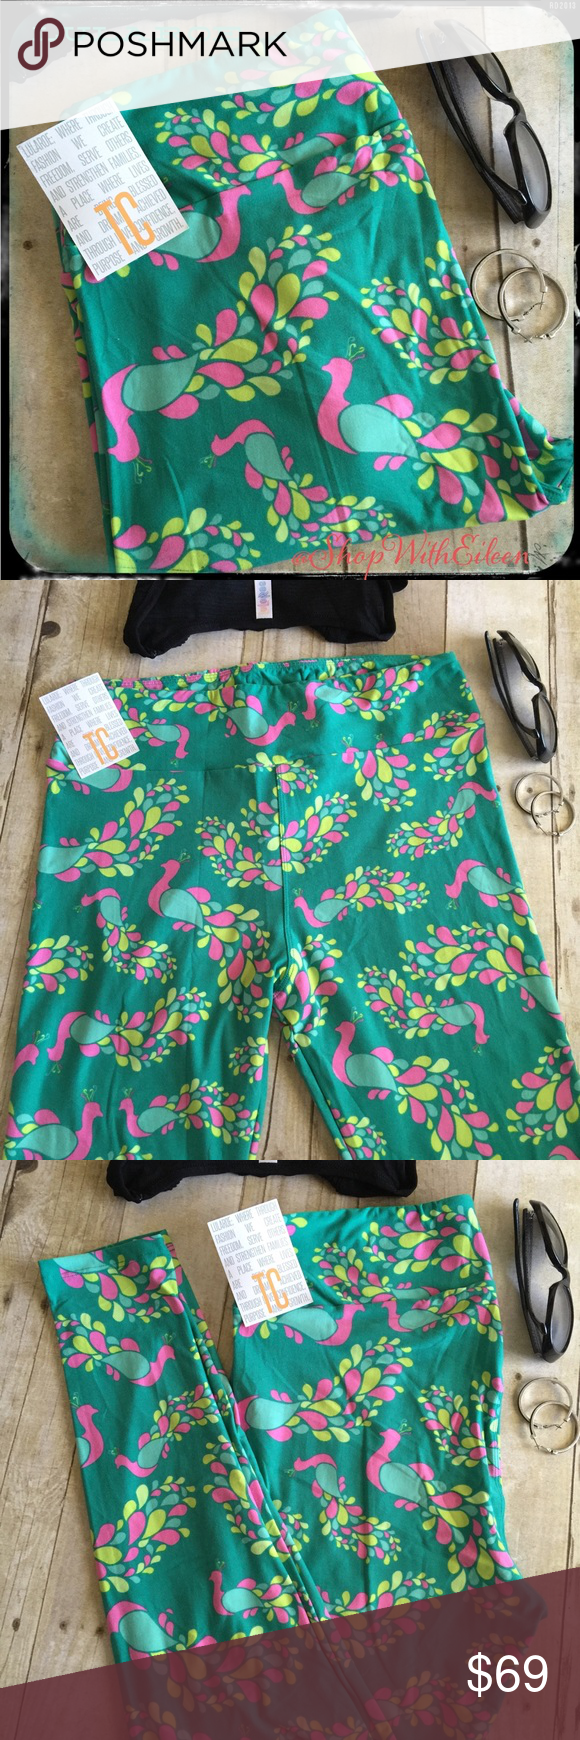 🆕 LulaRoe AQUA HOT PINK PEACOCK TC Leggings! 🆕 LulaRoe AQUA HOT PINK PEACOCK TC Leggings! 💗 AQUA background with  Hot pink chartreuse and mint peacock design! YES! PEACOCKS! 💗💚Very sought after NEW print & hard to find! These are made in China. I am not a consultant… I am just a LulaRoe addict and love the hunt to find great prints! Enjoy! 🦄🦄🦄 {$25 is not an acceptable offer} LuLaRoe Pants Leggings